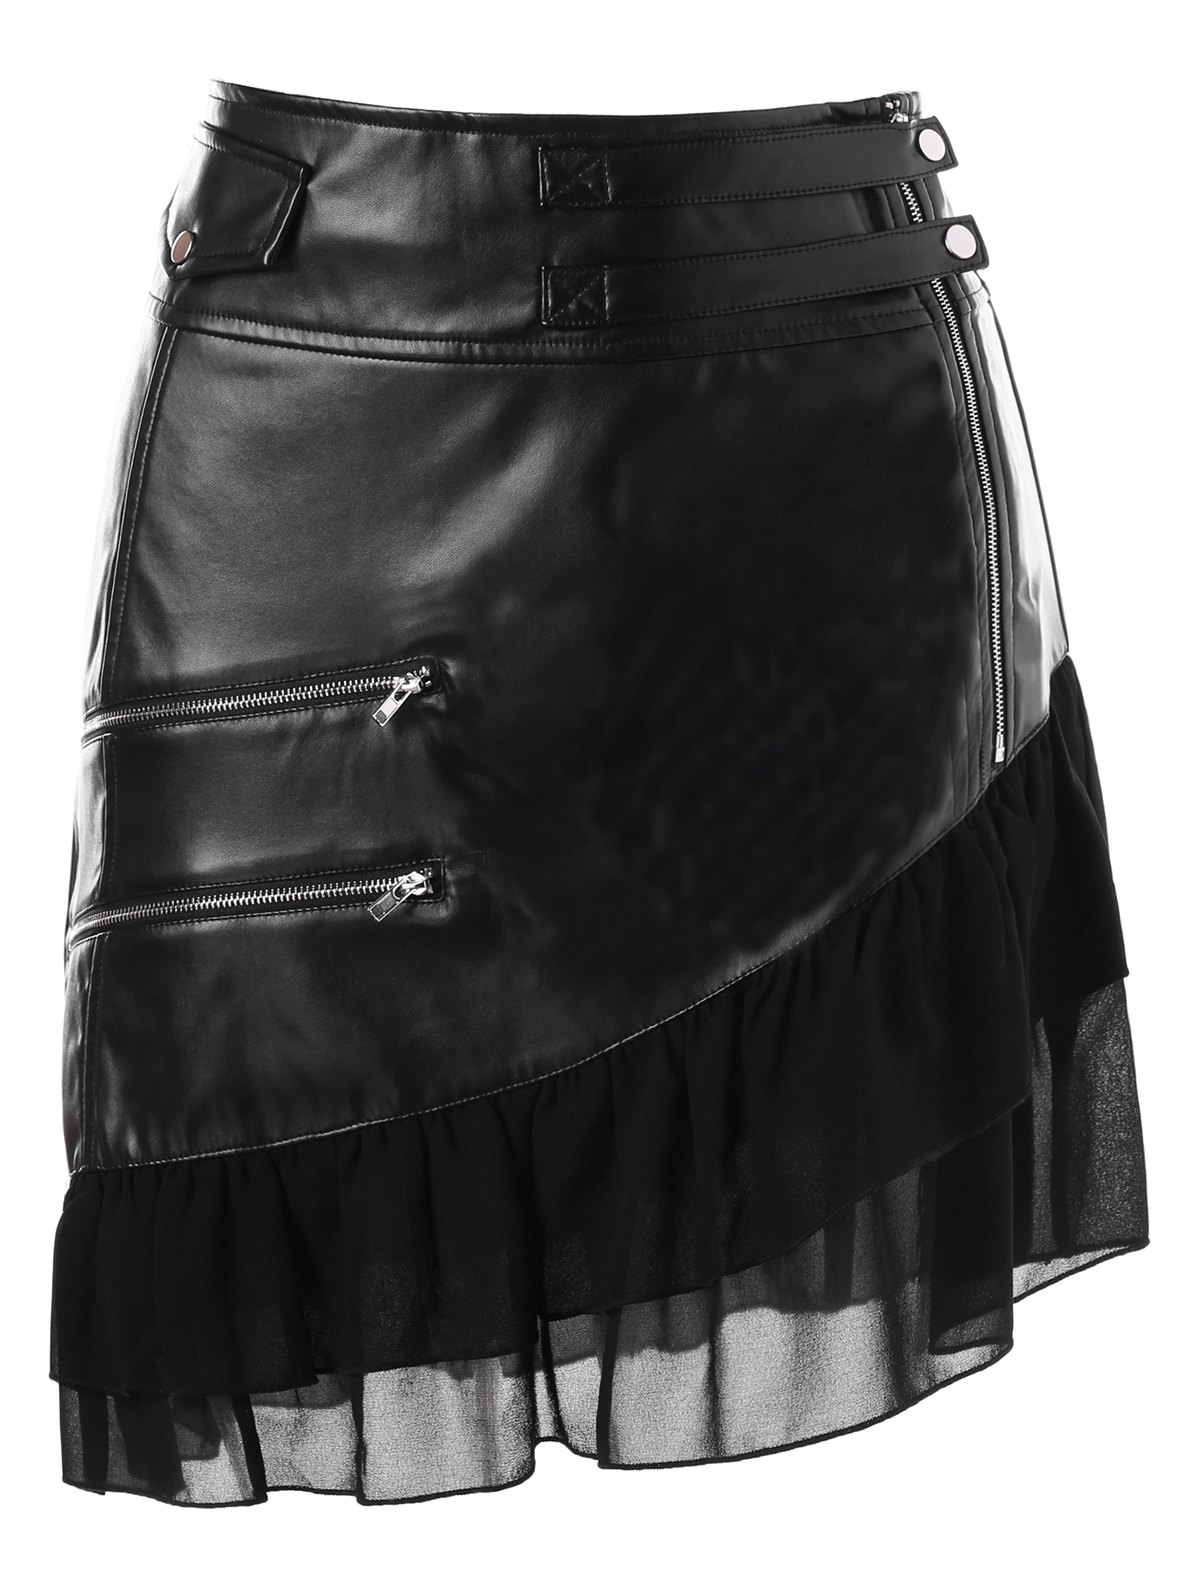 Zipper Flounce Panel Faux Leather SkirtWOMEN<br><br>Size: L; Color: BLACK; Material: Faux Leather,Polyester; Length: Mini; Silhouette: A-Line; Pattern Type: Others; Embellishment: Flounce,Zippers; Season: Fall,Spring,Winter; With Belt: No; Weight: 0.4300kg; Package Contents: 1 x Skirt;